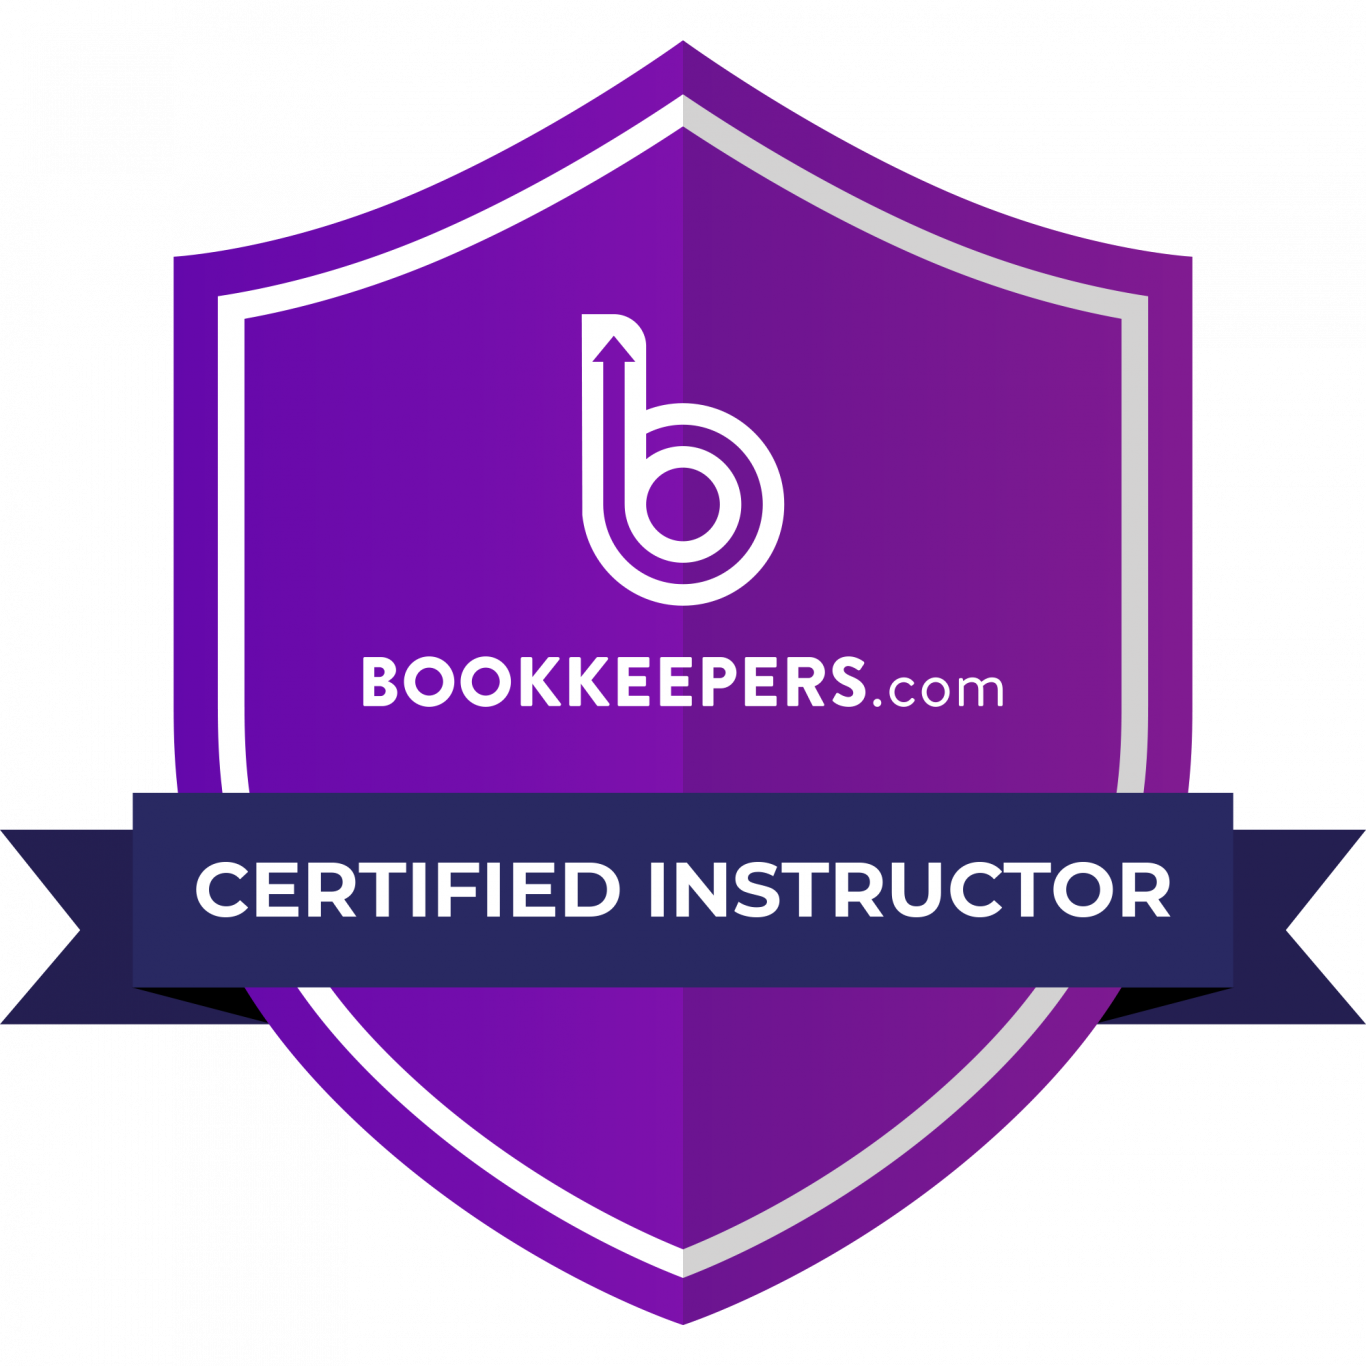 bookkeepers-com-certified-instructor_copy